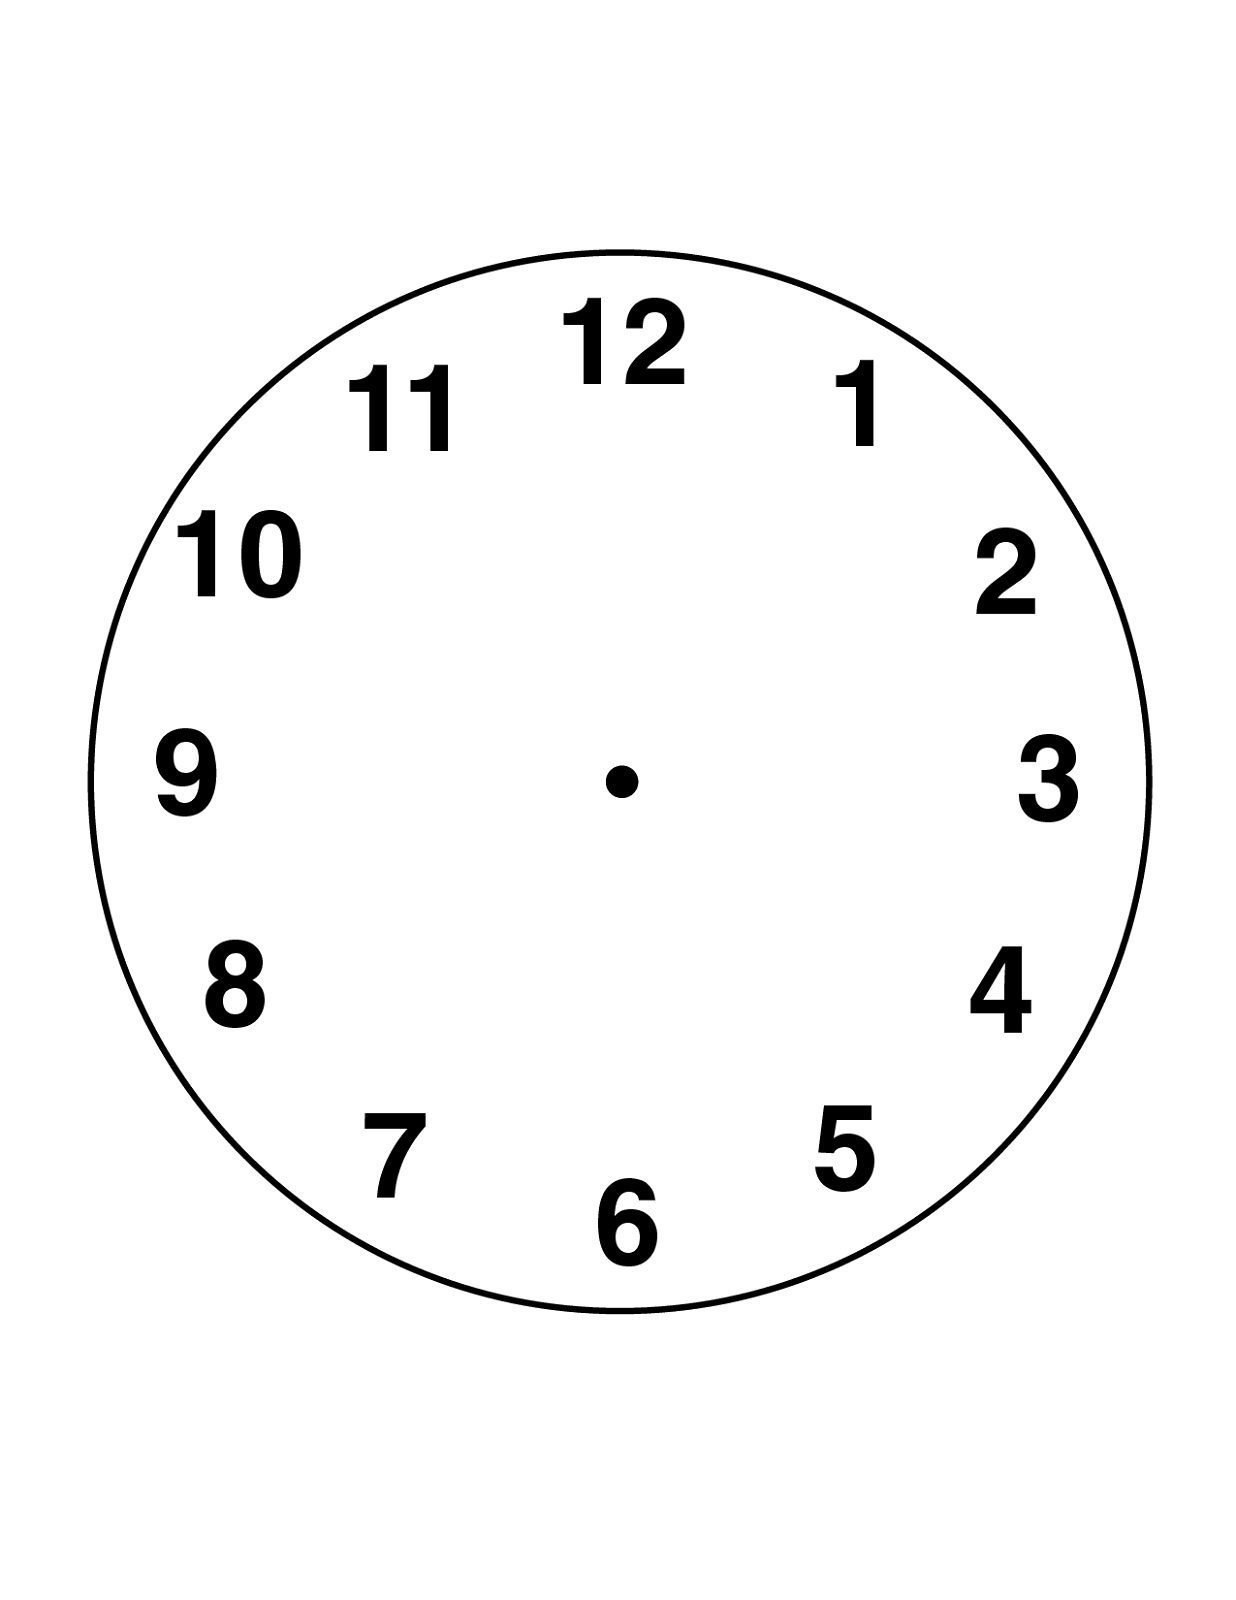 clock face templates for printing - blank clock faces for exercises activity shelter